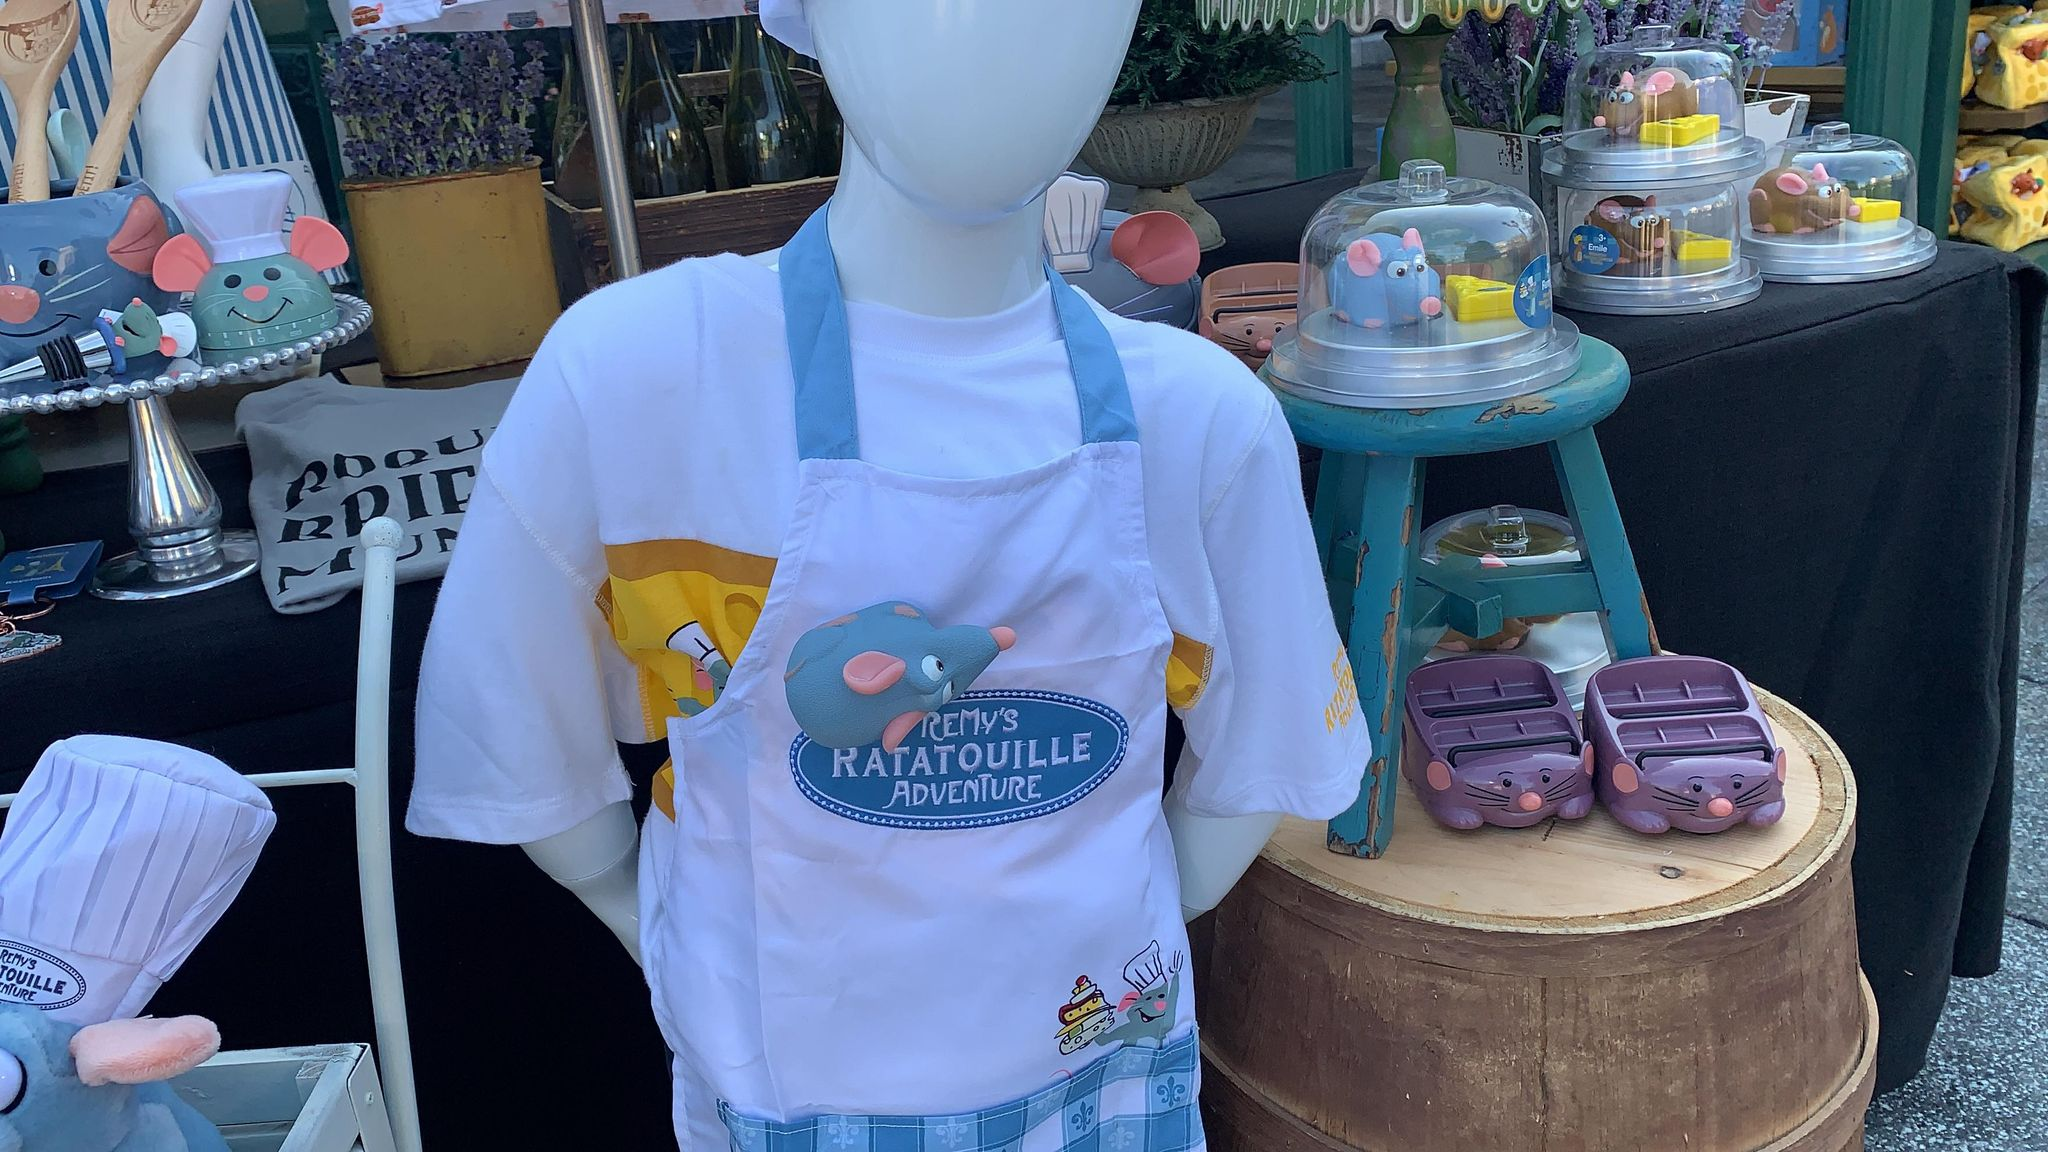 First look at the new Remy's Ratatouille Adventure line of merch coming soon! 2